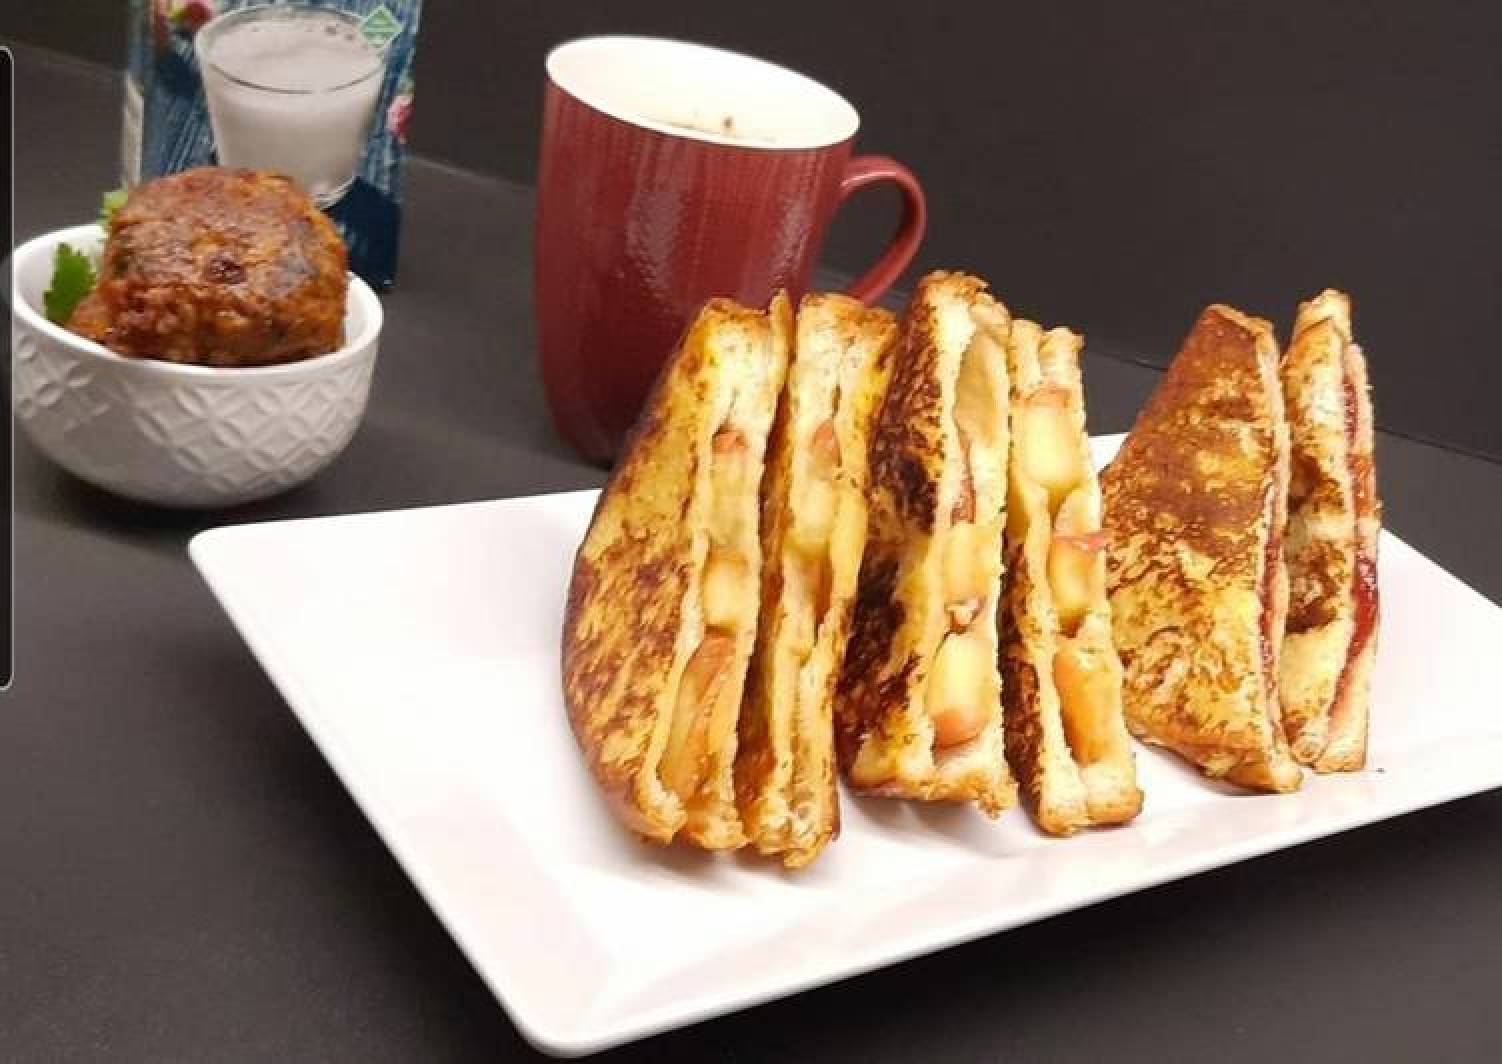 Caramelized apple and strawberry jam french toast